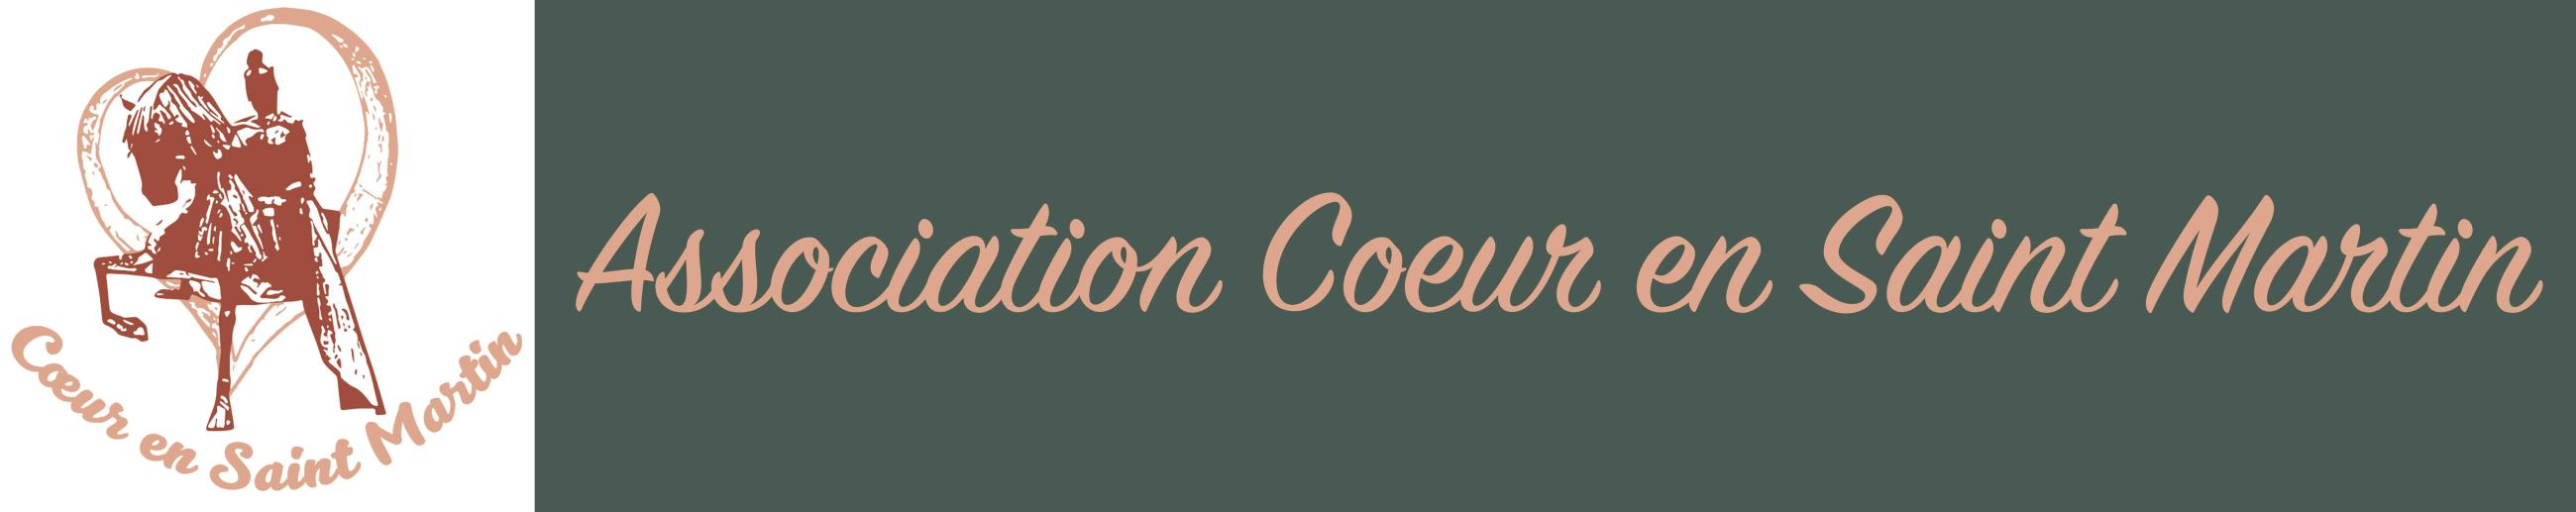 Association Coeur en Saint Martin